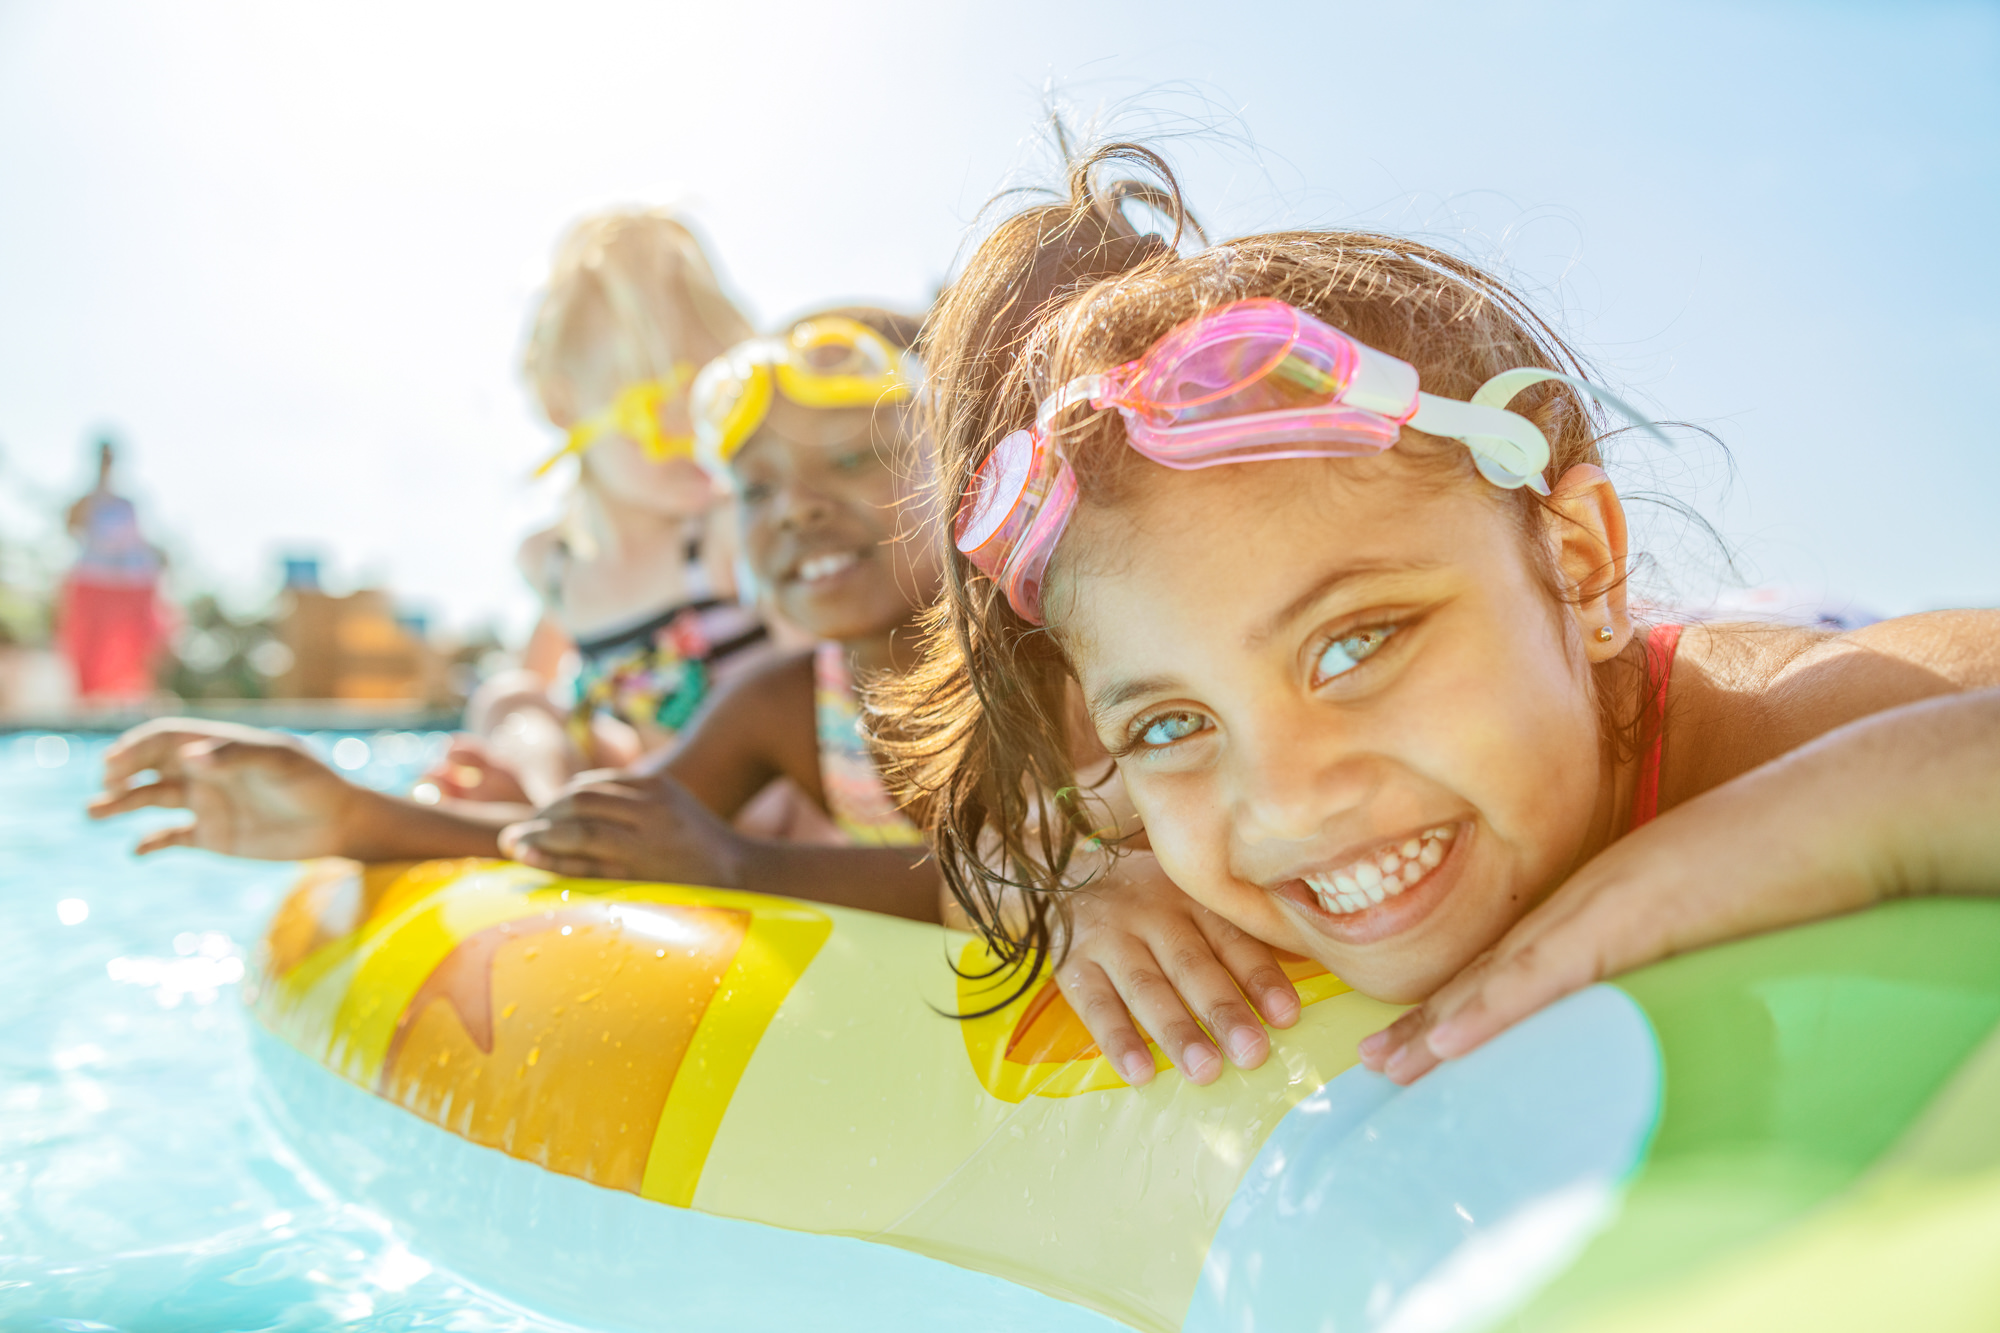 Image of children in the pool at the Beverly Hills Hotel in uMhlanga Rocks, Durban for  Tsogo Sun's Image Library & Content Library by Michelle Wastie Photography